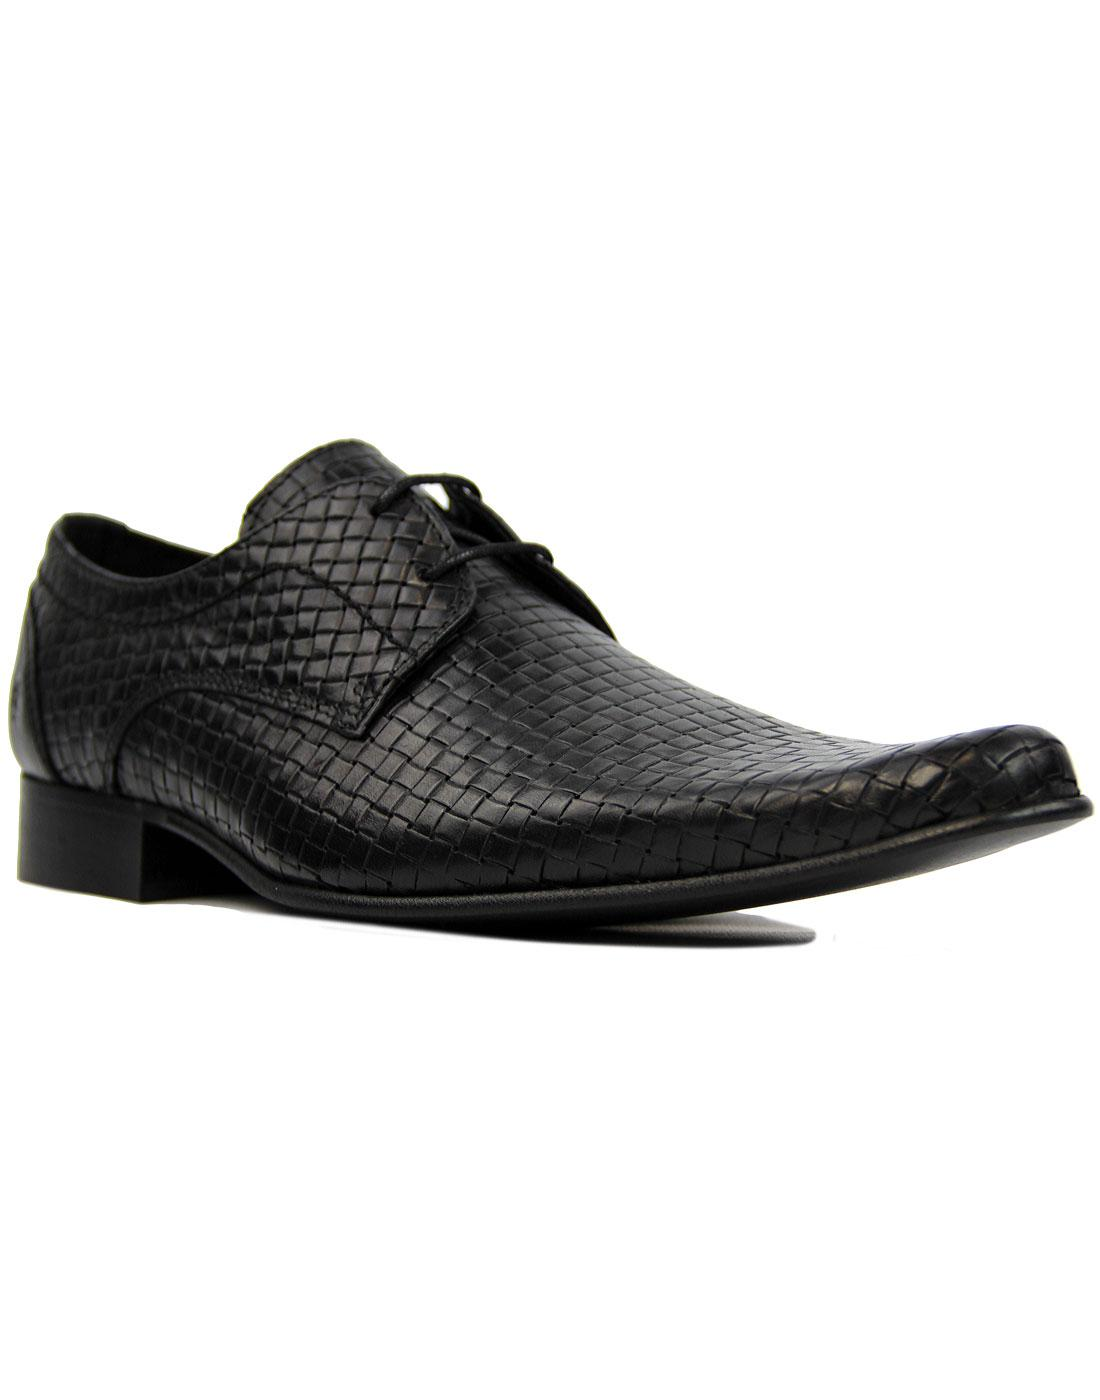 Buckler IKON ORIGINAL Retro Mod Basketweave Shoes